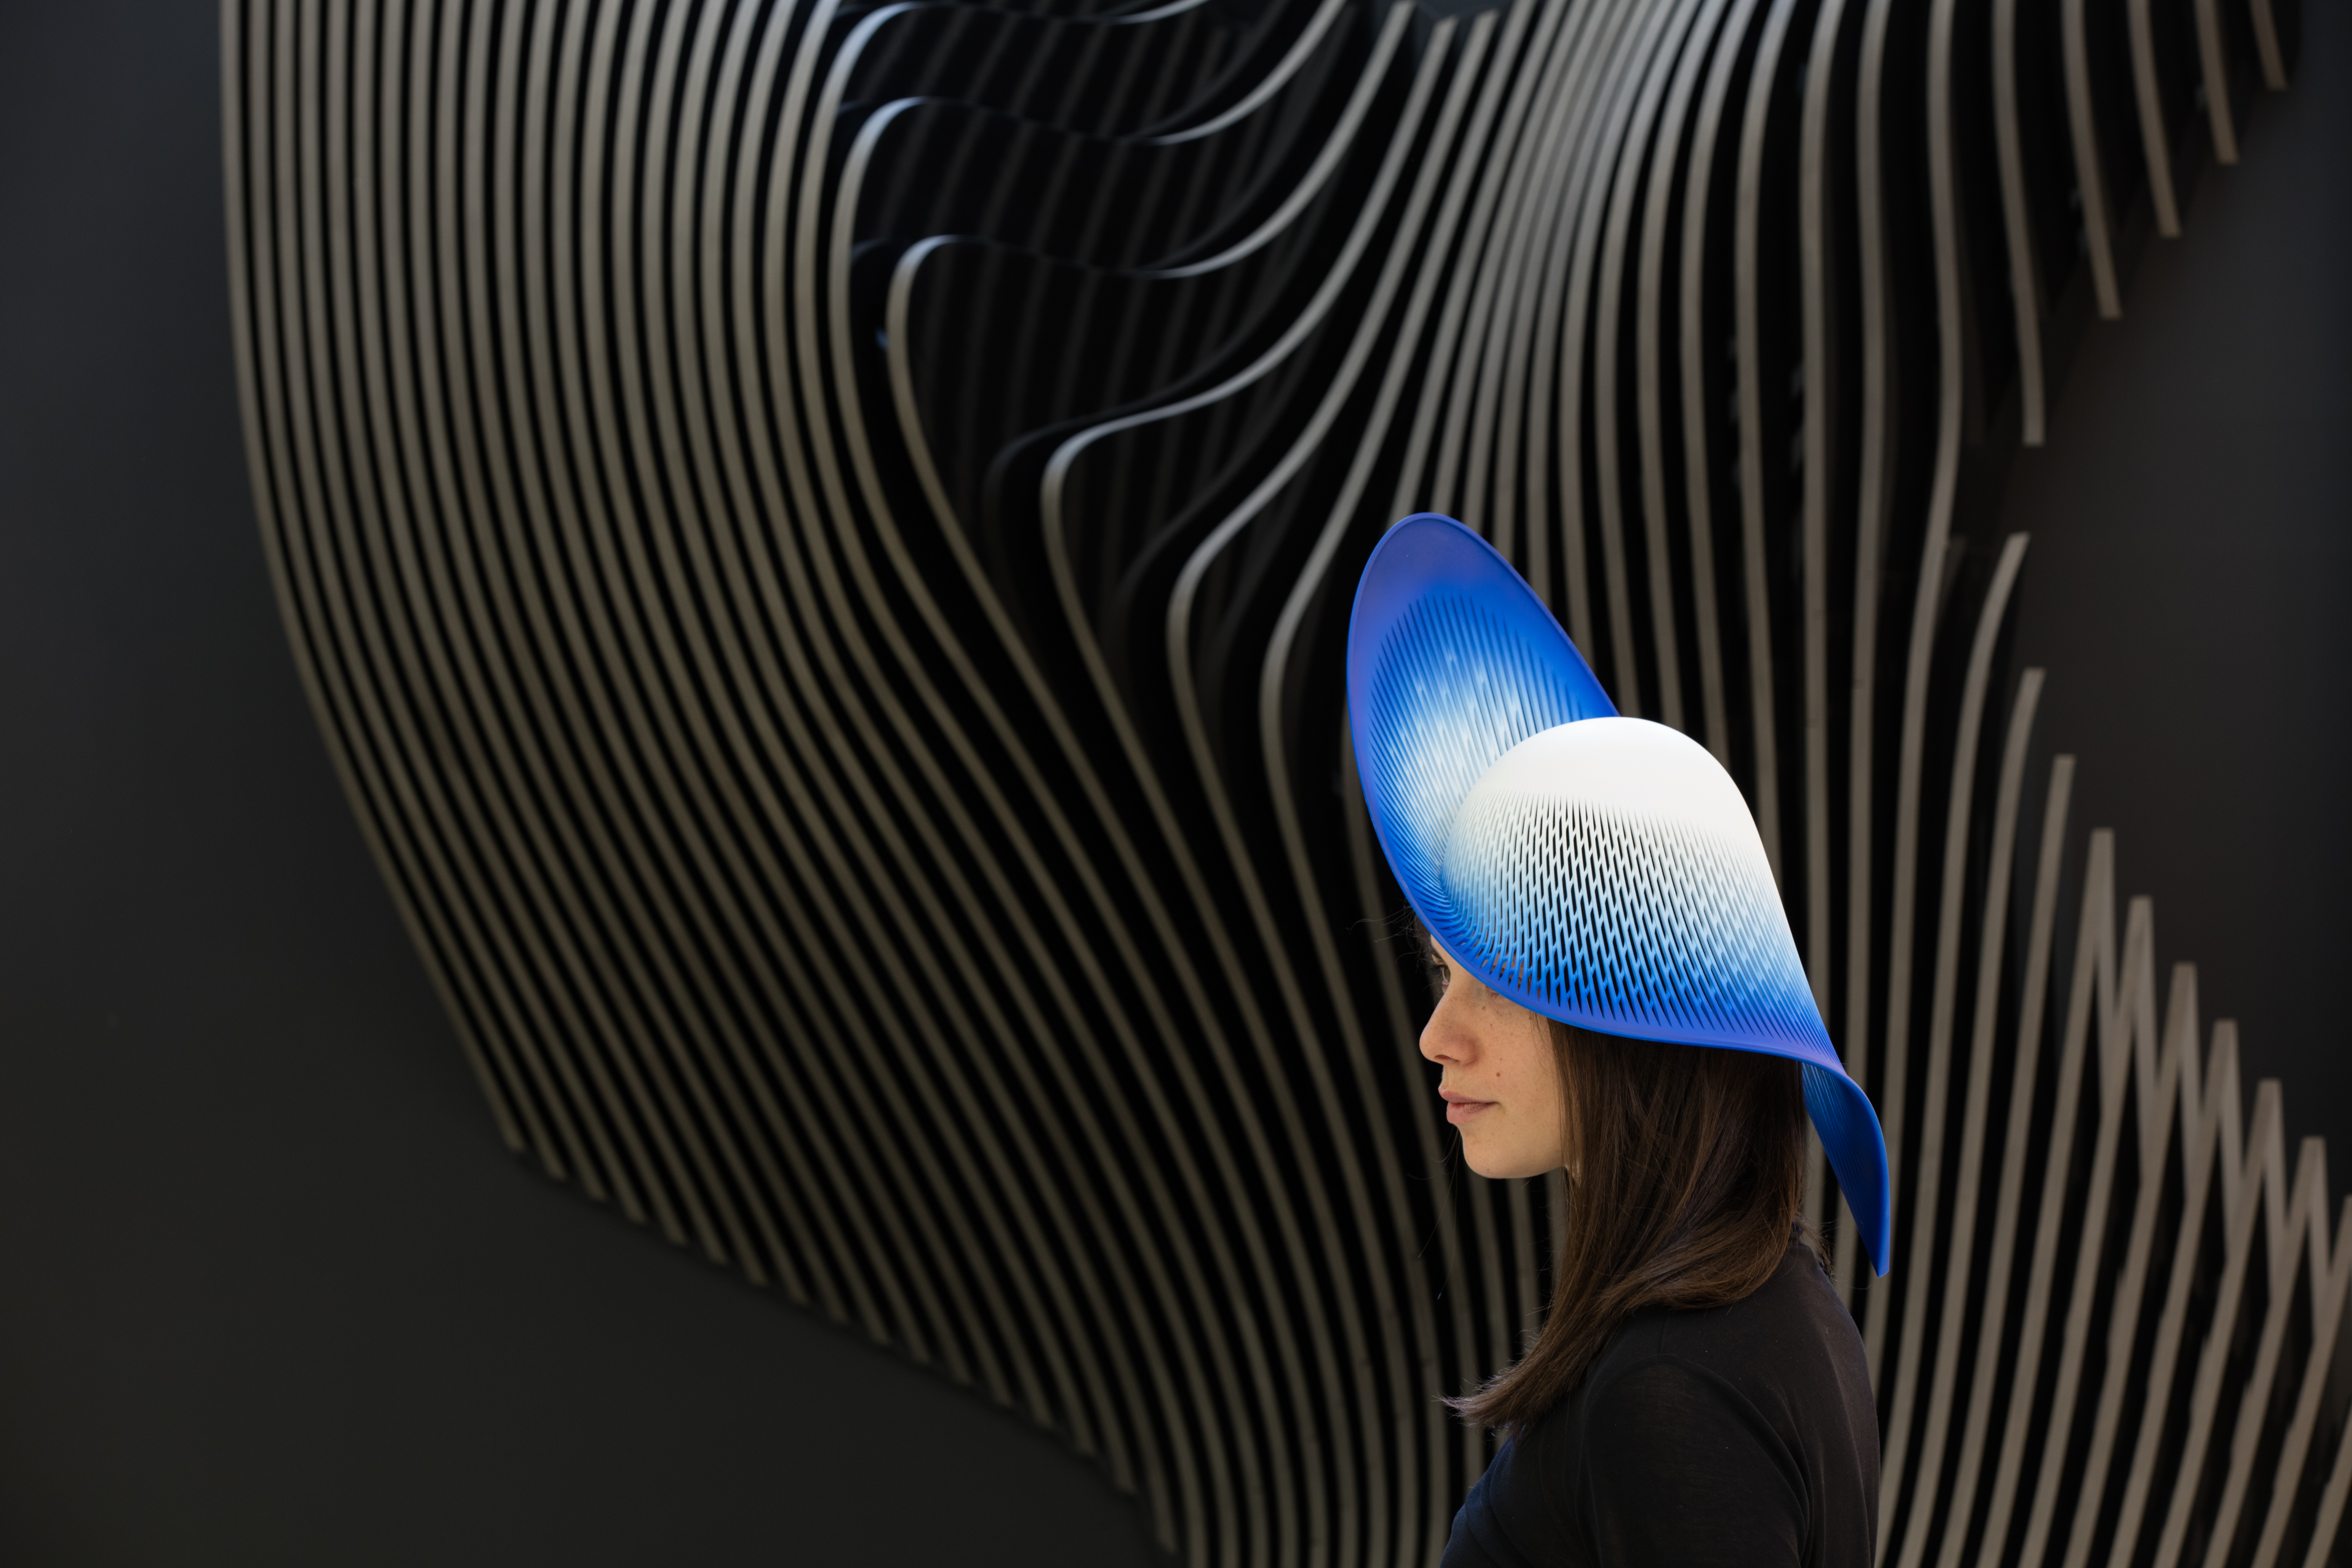 Side profile shot of a woman wearing a molded plastic hat that goes from white to blue with a front brim flipping up and the back one dipping down.